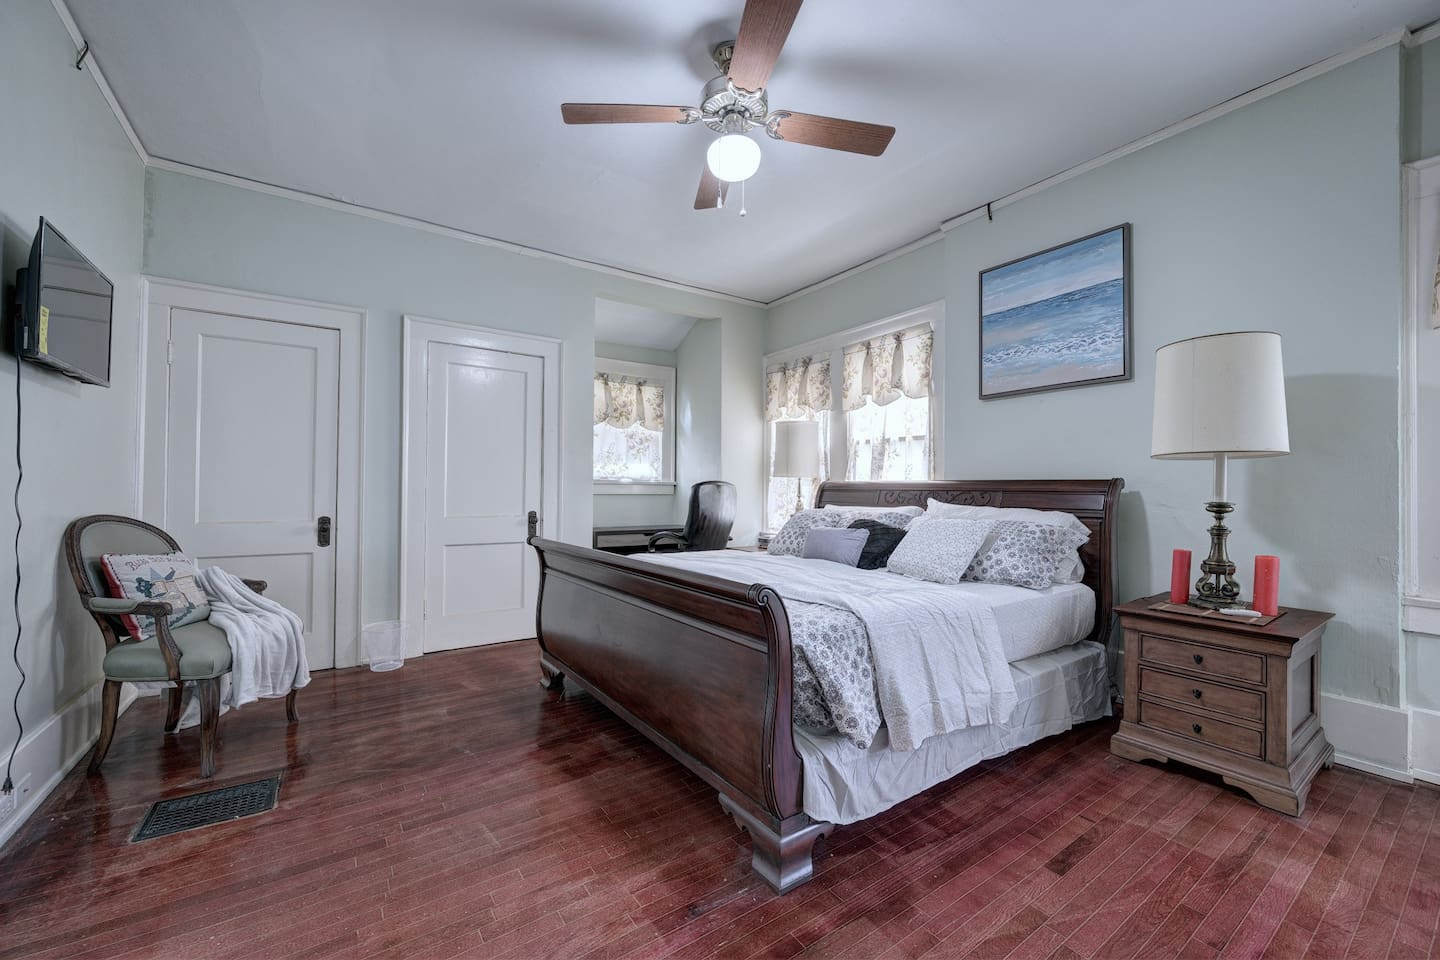 private king bedroom and private bathroom with shared kitchen space .